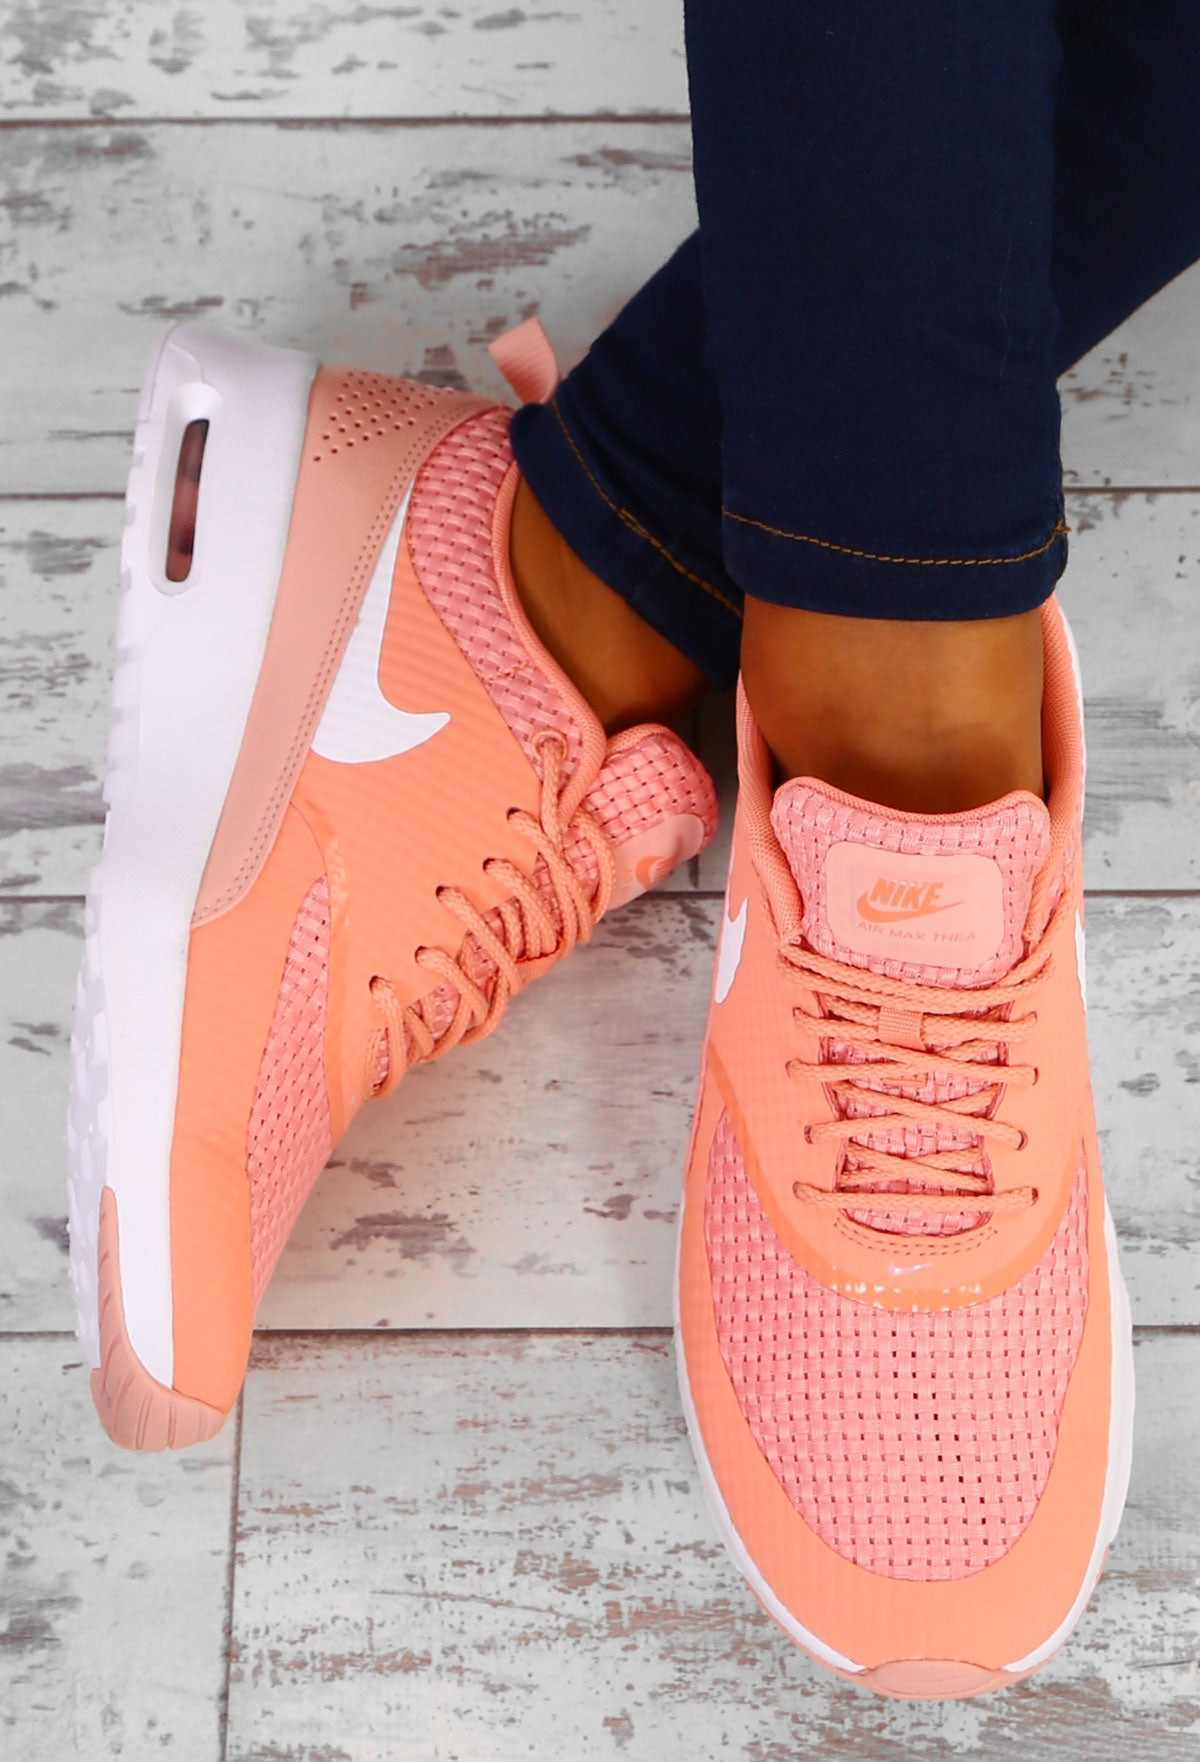 b31caf0753d2 Nike Air Max Thea Crimson Bliss Trainers – Pink Boutique UK